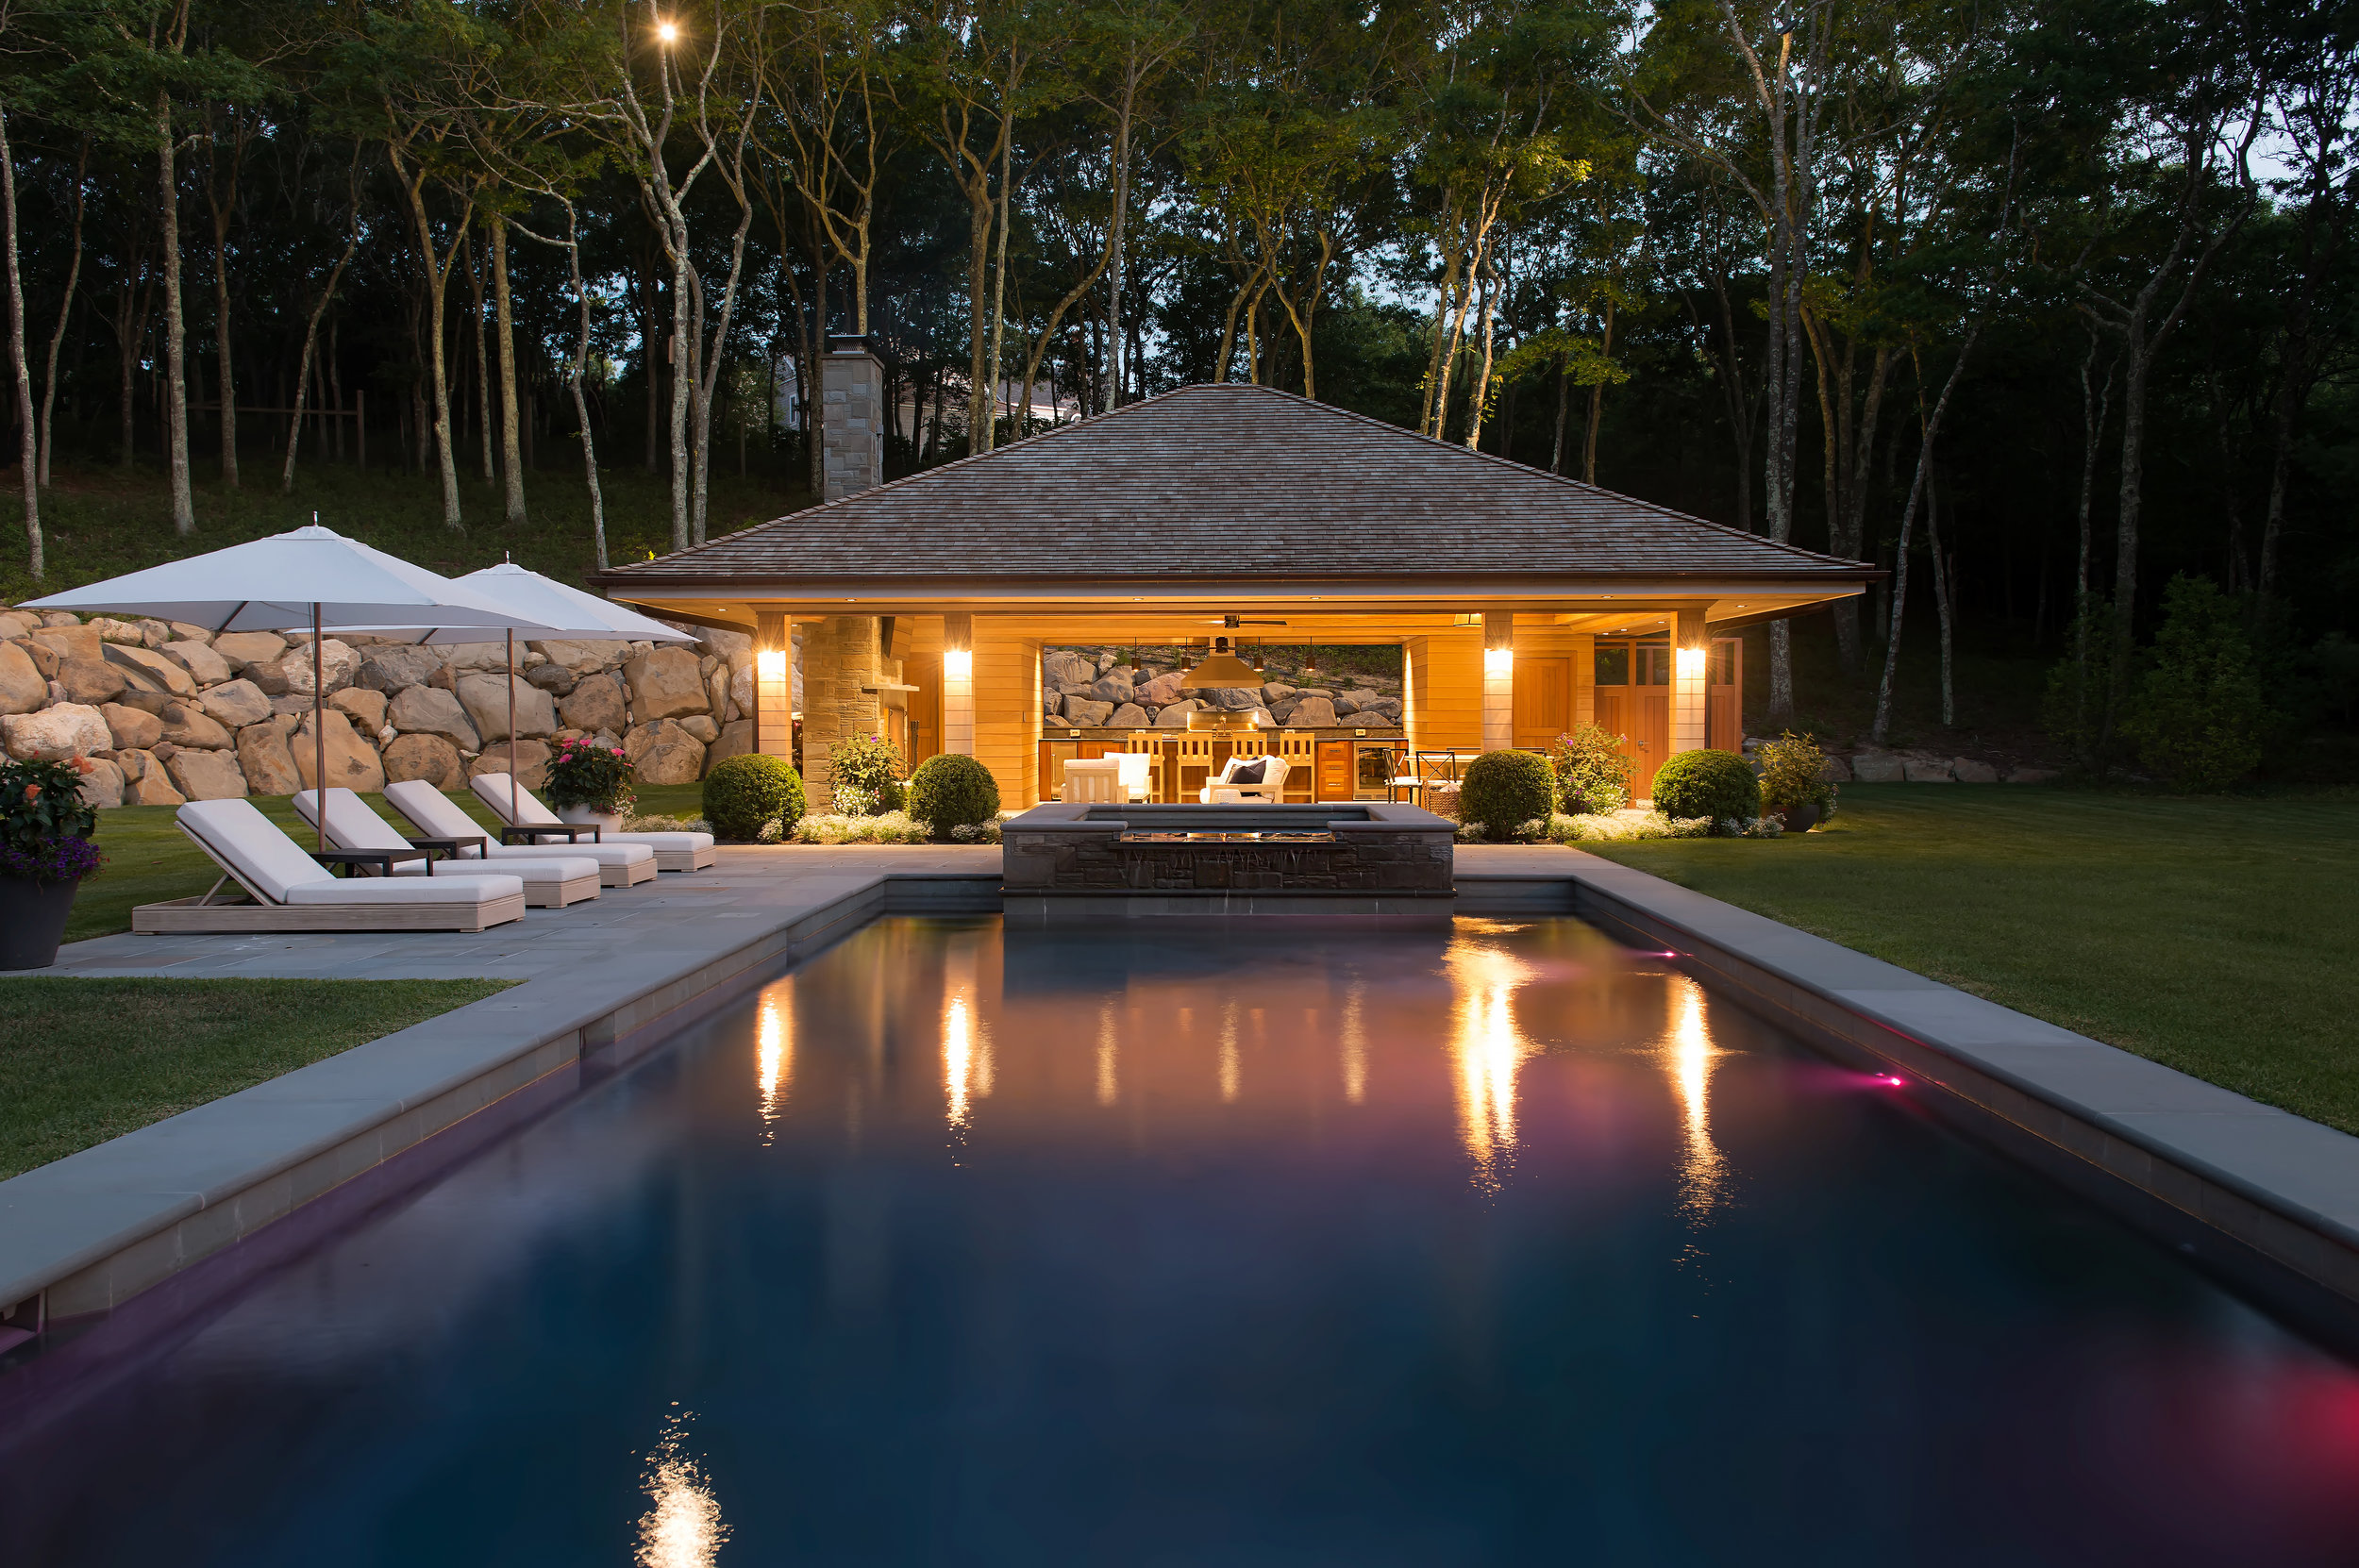 Landscape lighting provides safety and security during the nighttime hours.